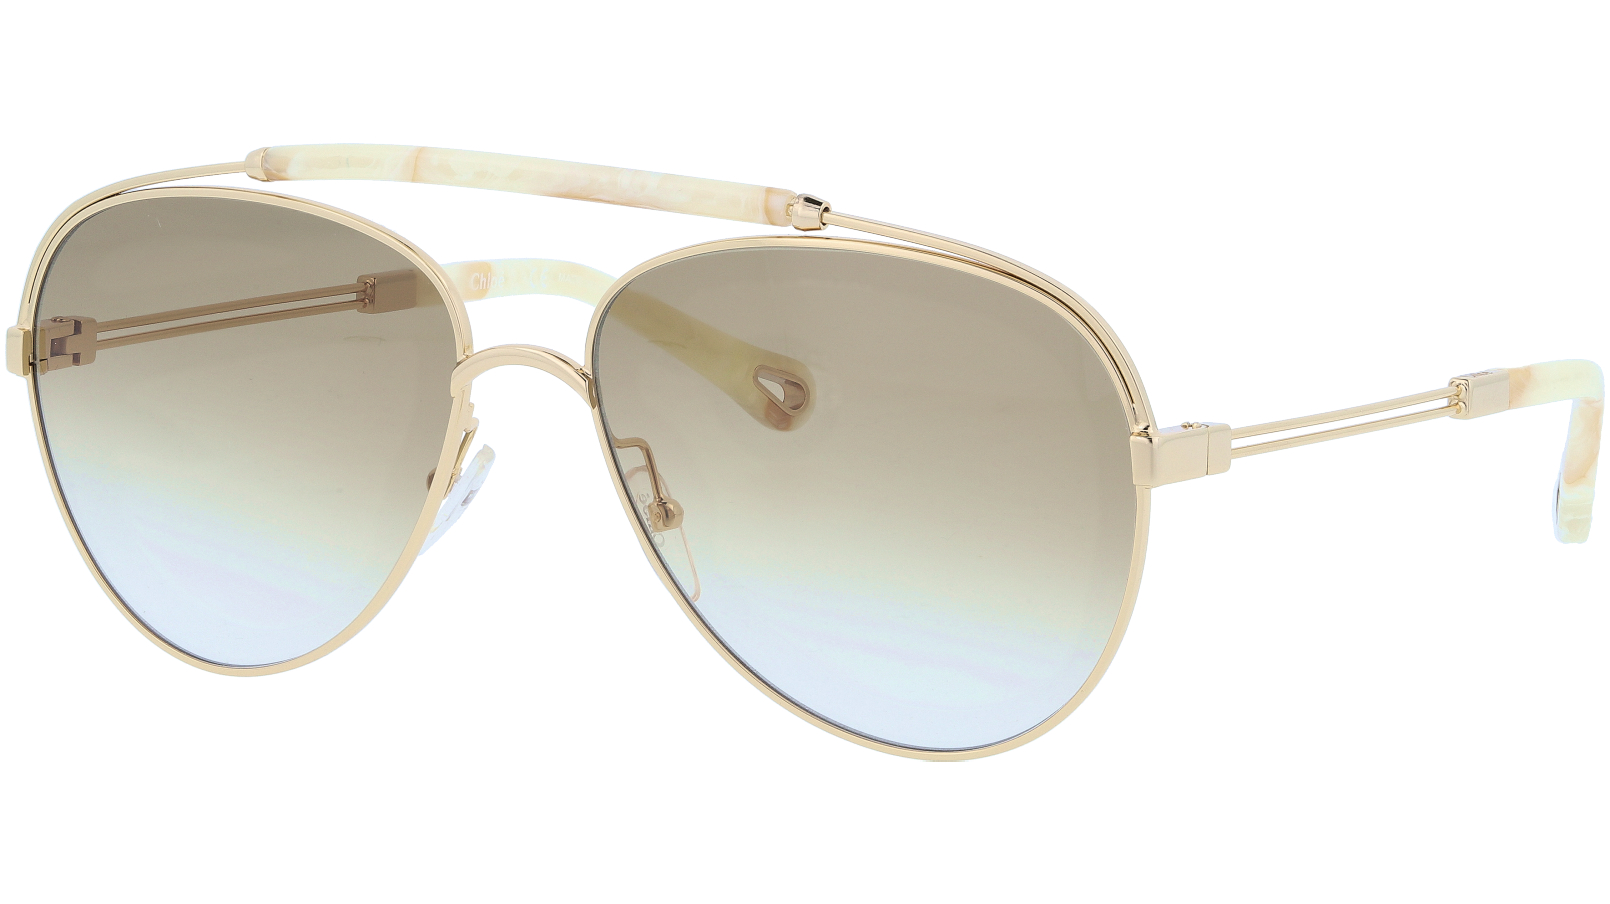 CHLOE CE141S 795 59 Gold Aviator Sunglasses